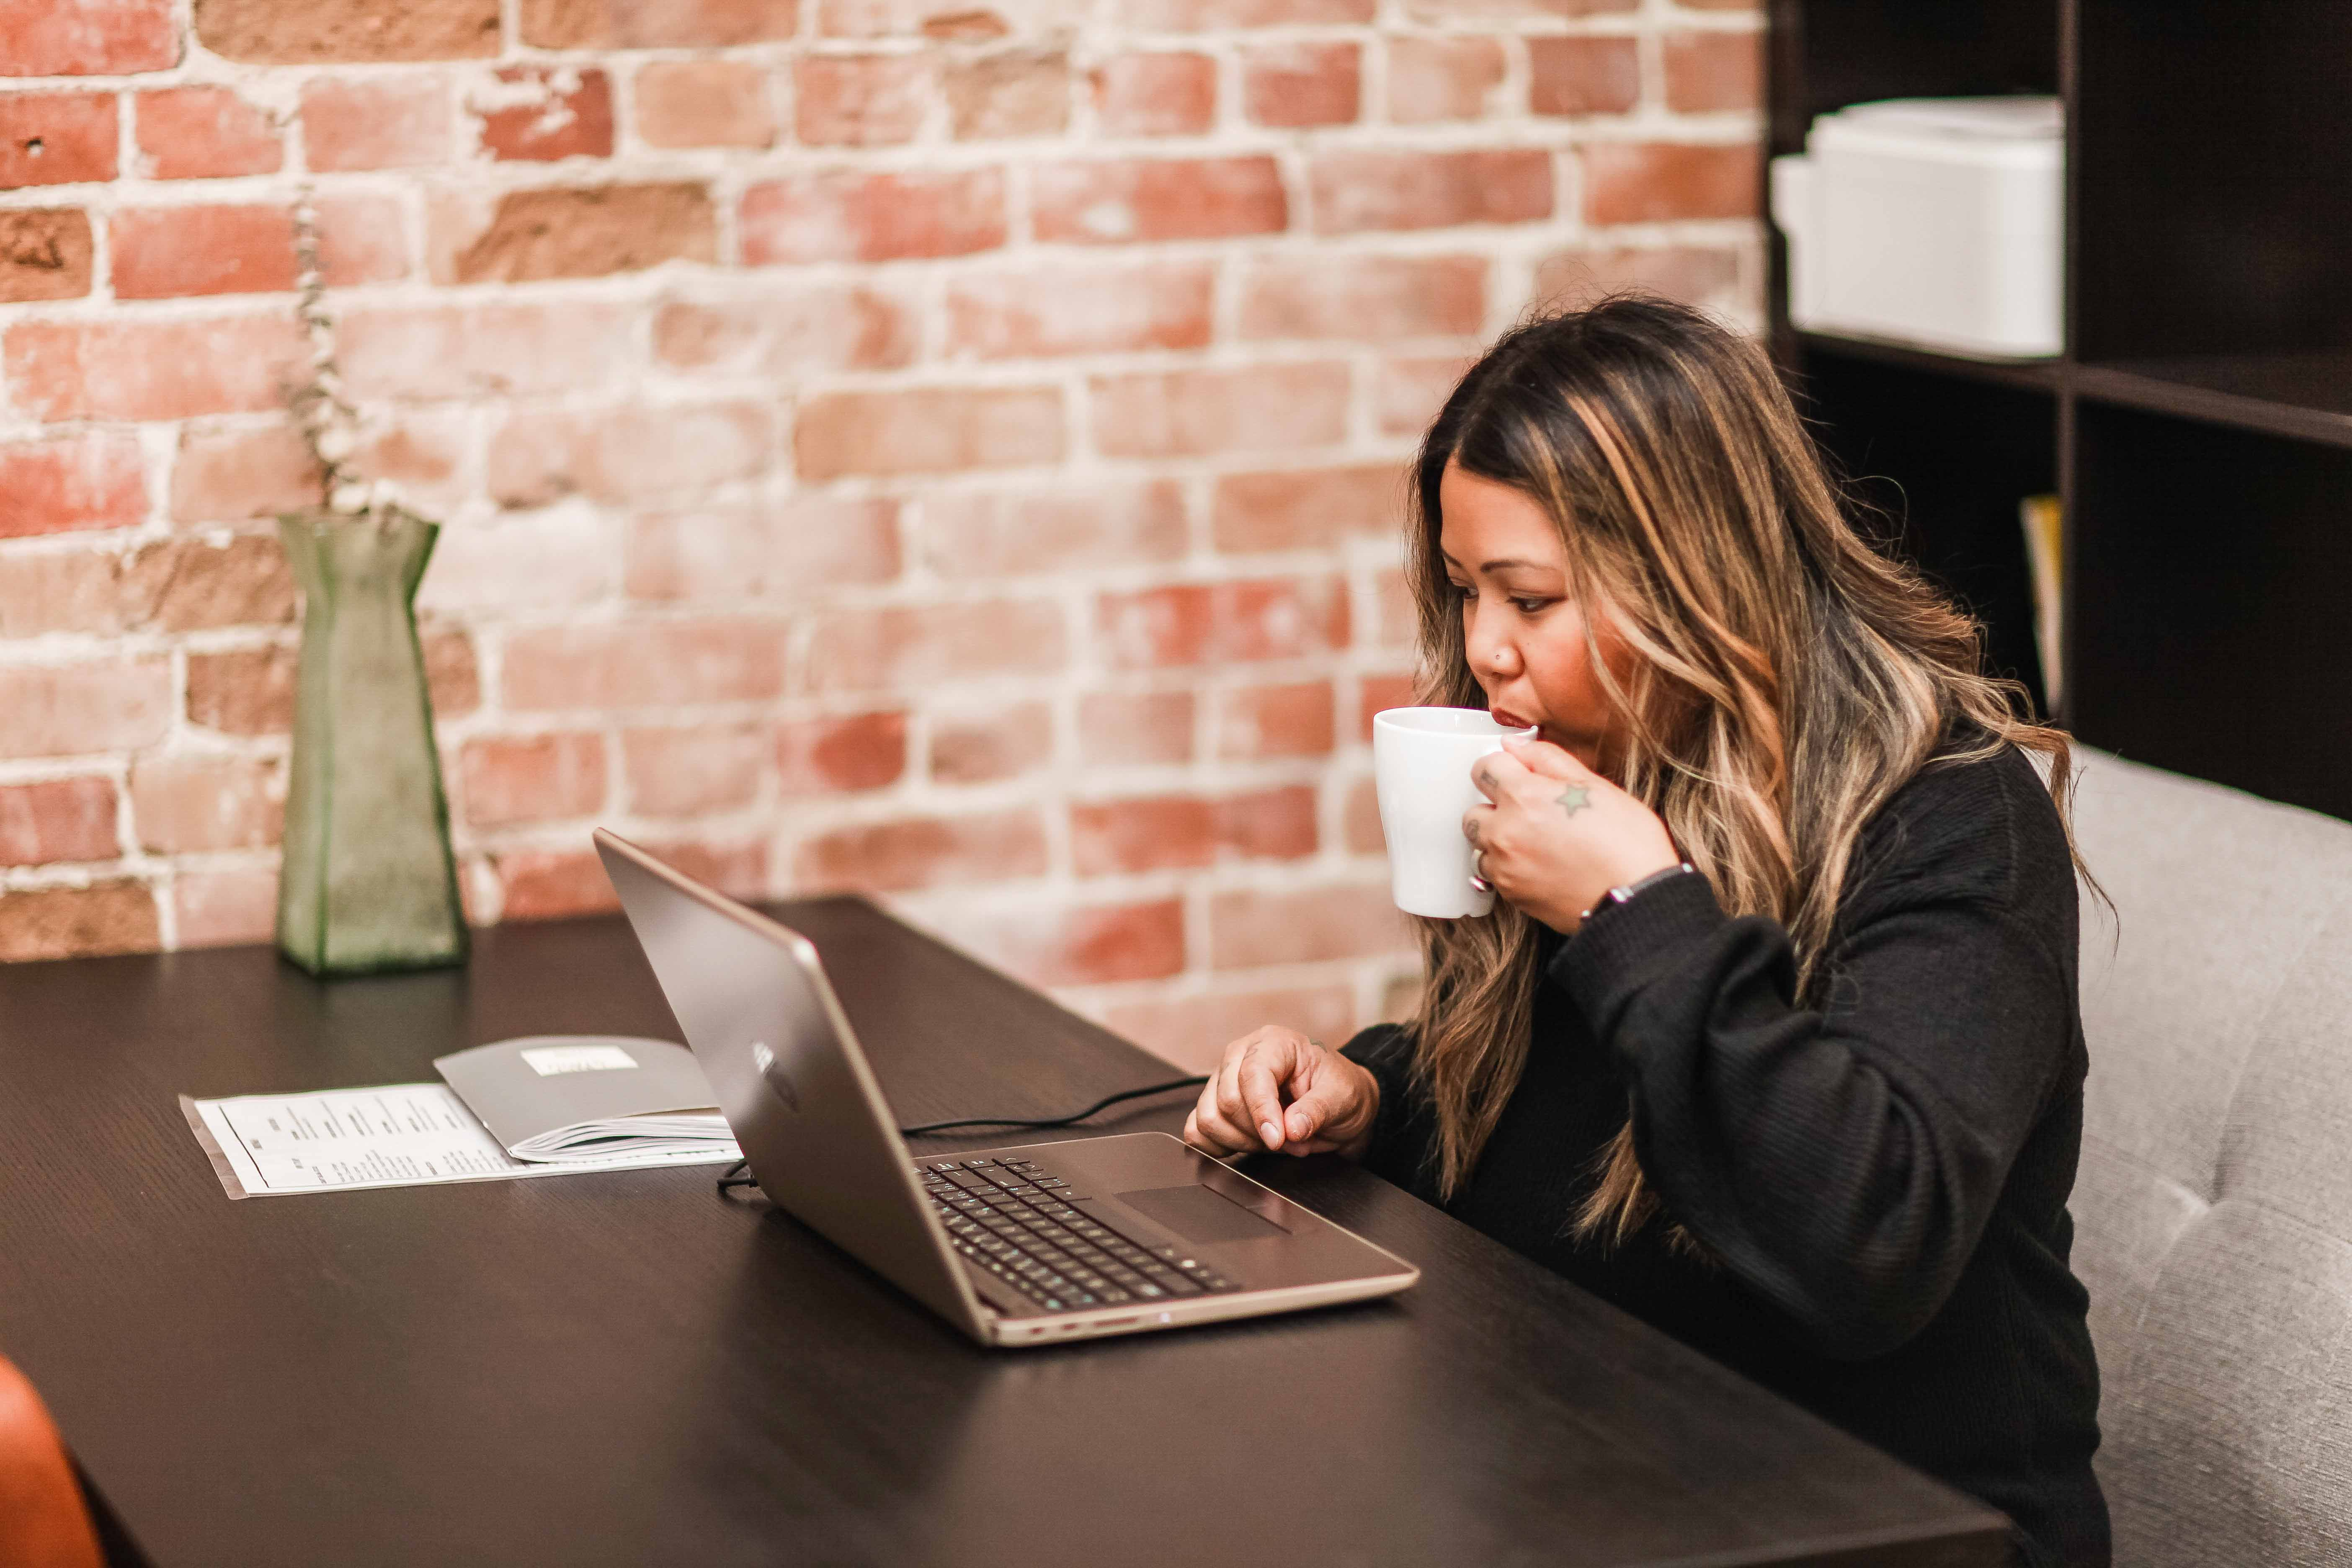 Person sipping on coffee working at a desk on a laptop